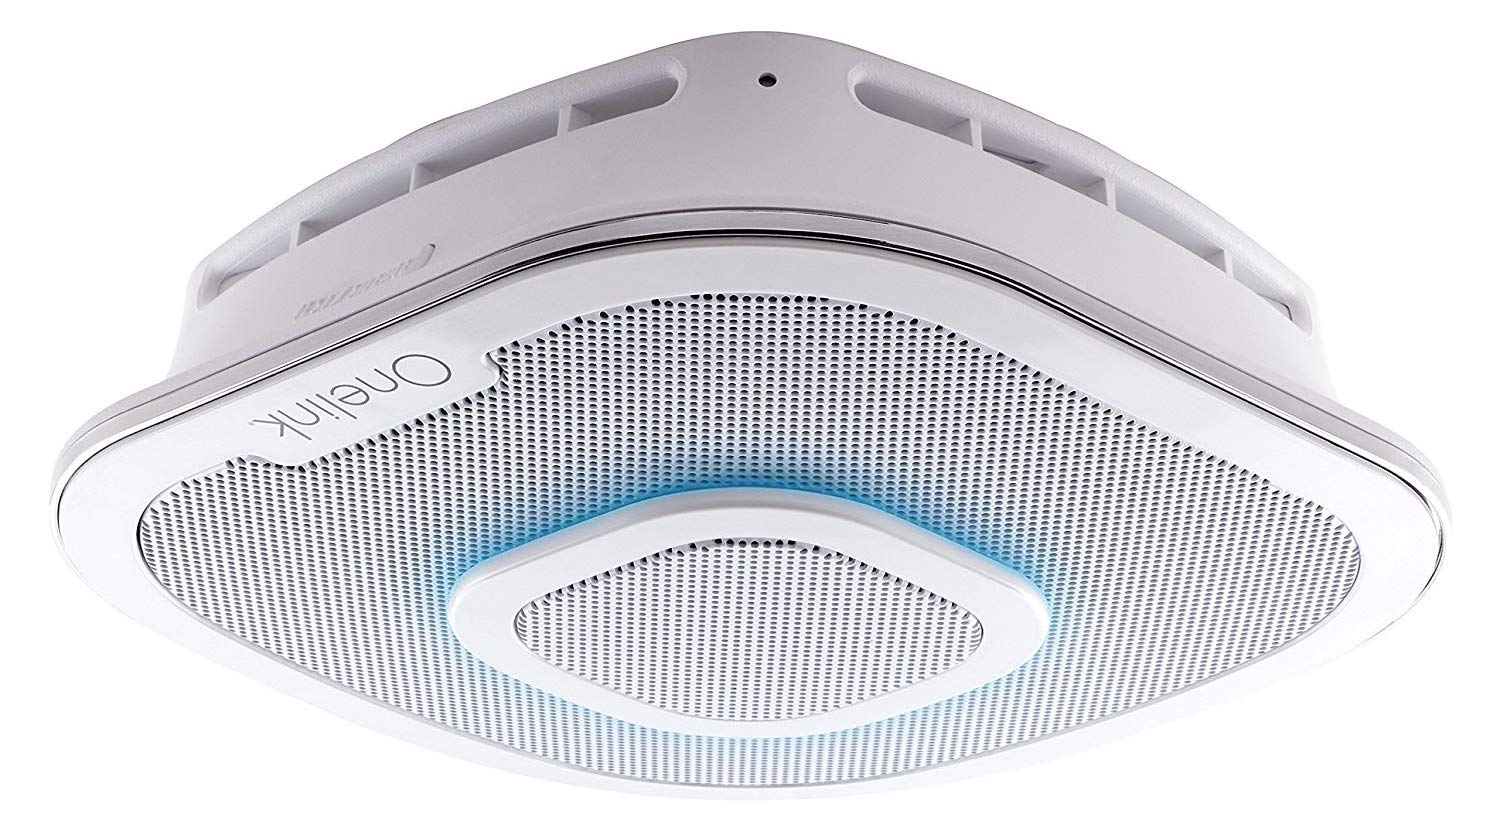 Best Smart Smoke Detector 2019 - Smoke Alarms Connected to Wi-Fi